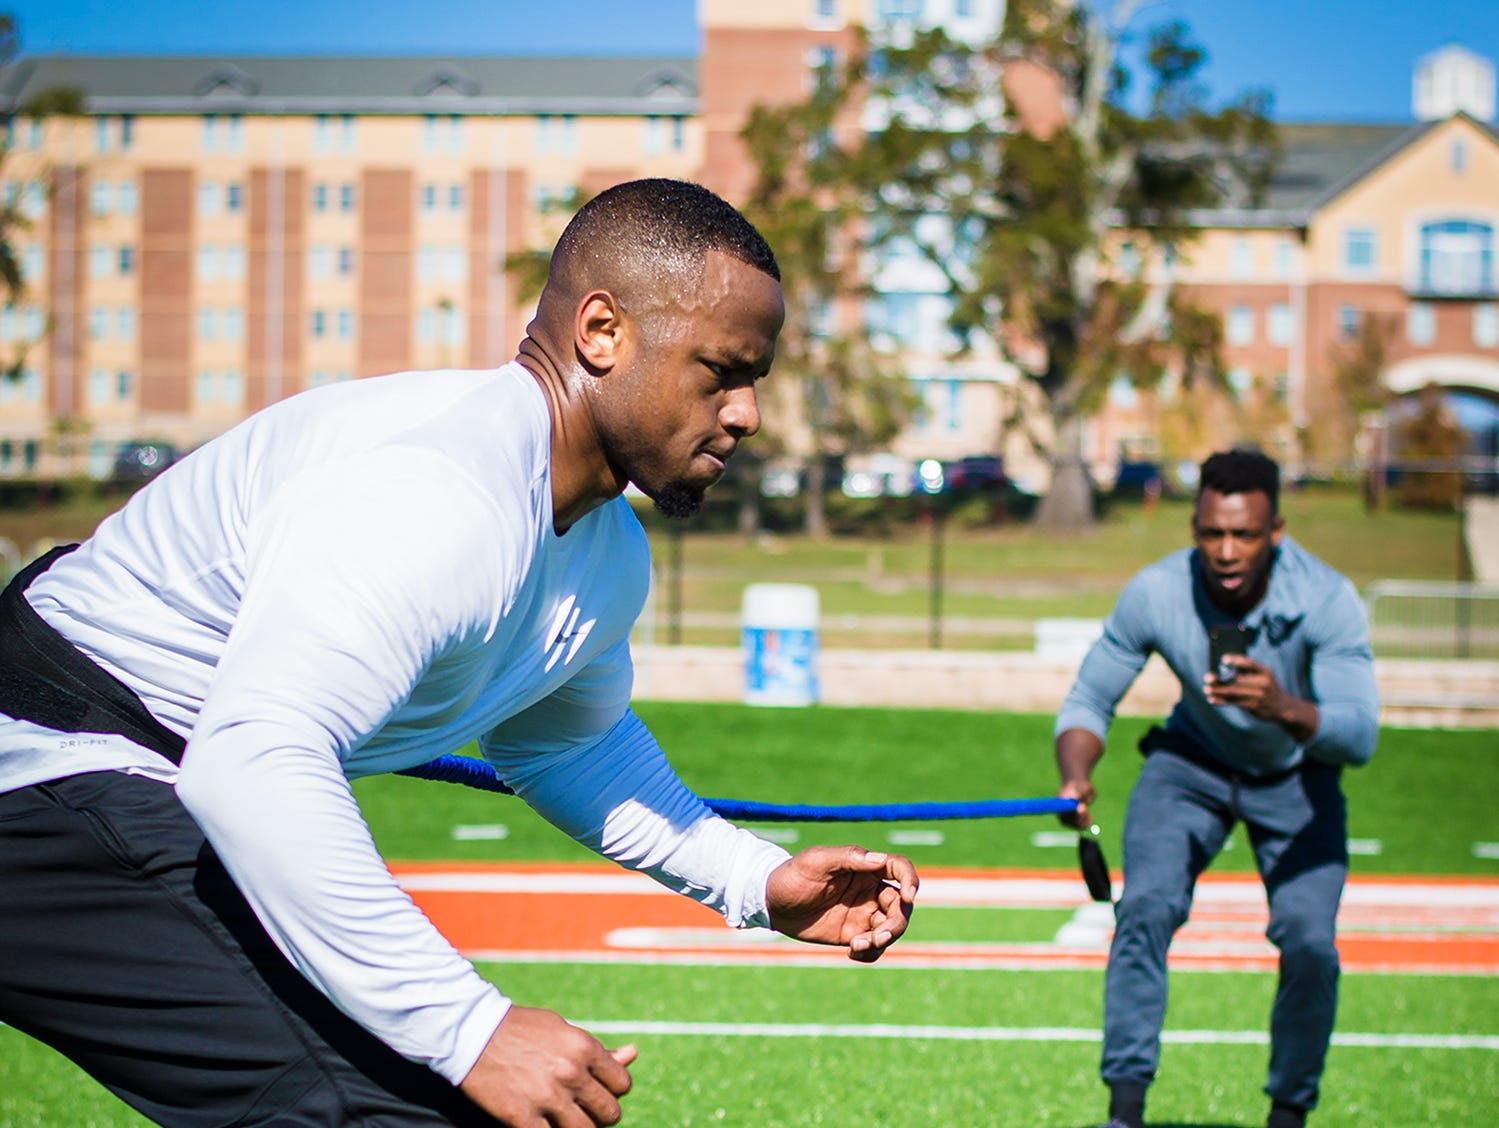 Former FAMU linebacker Akil Blount works with his former Rattlers teammate John Derae (background) on his lateral movement at Bragg Memorial Stadium.